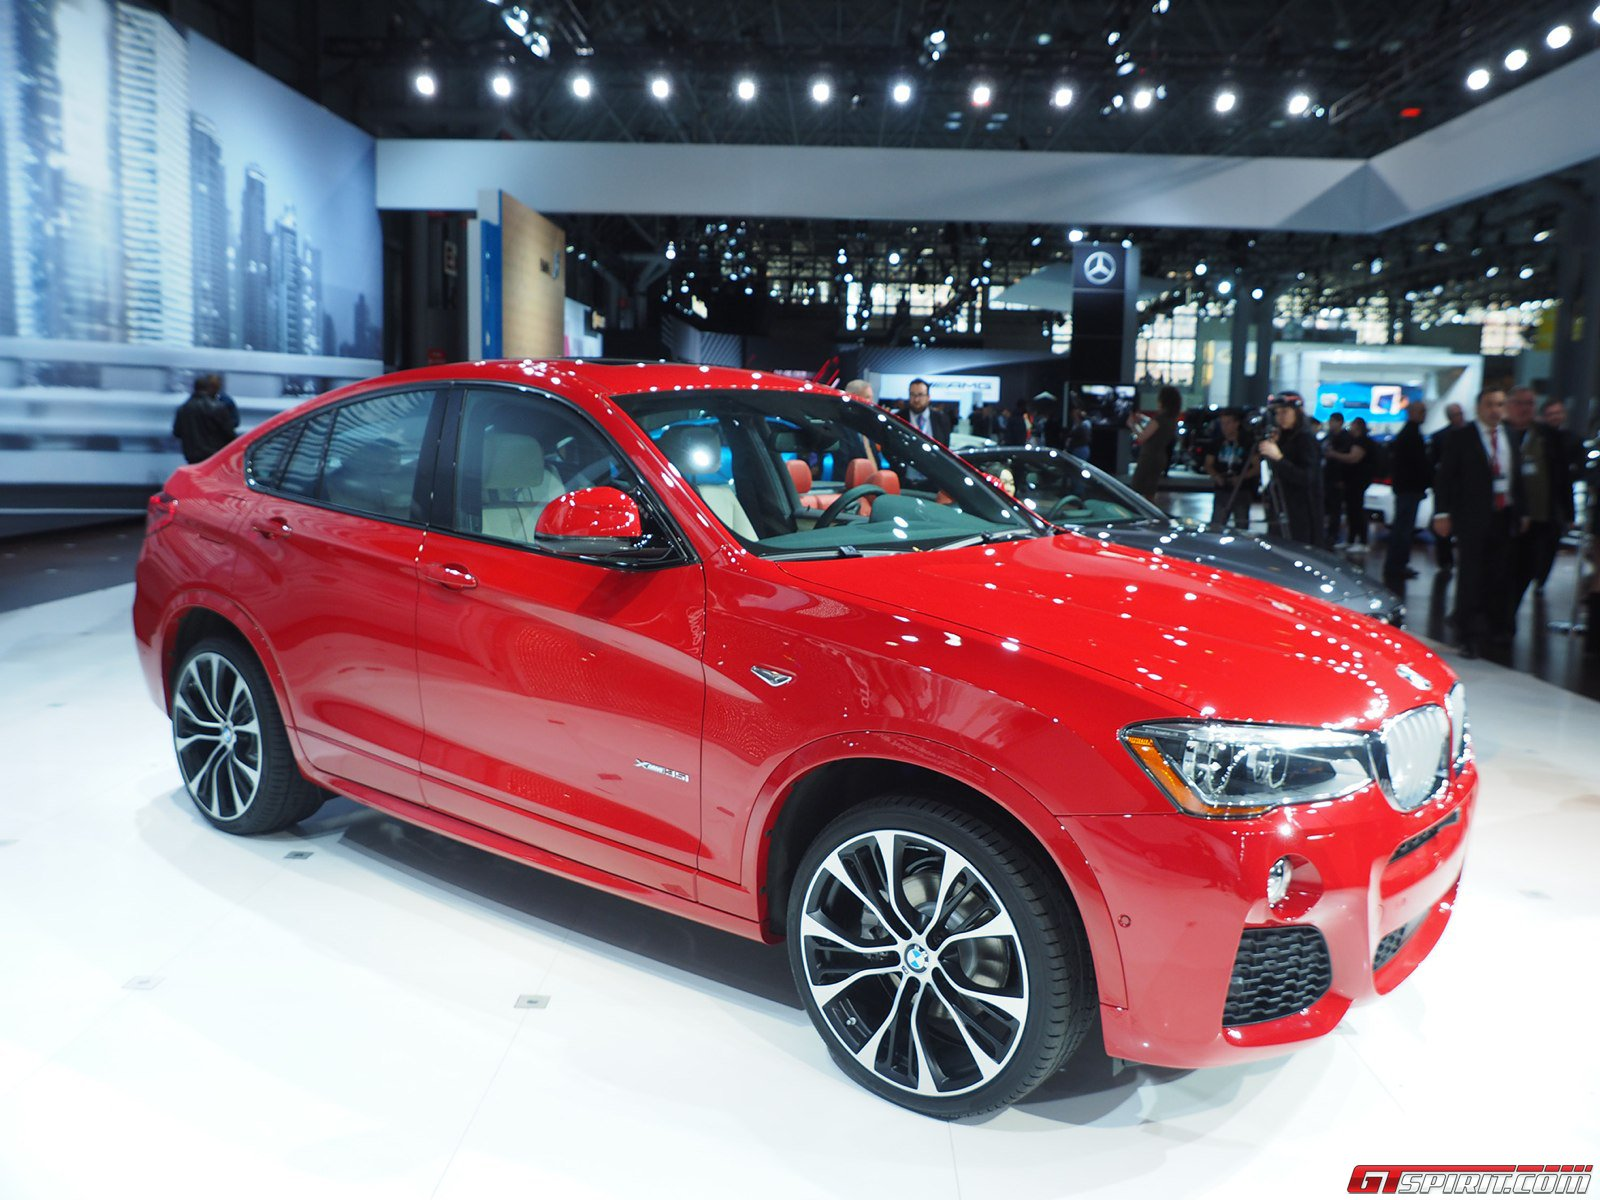 bmw x4 m coming in 2017 gtspirit. Black Bedroom Furniture Sets. Home Design Ideas